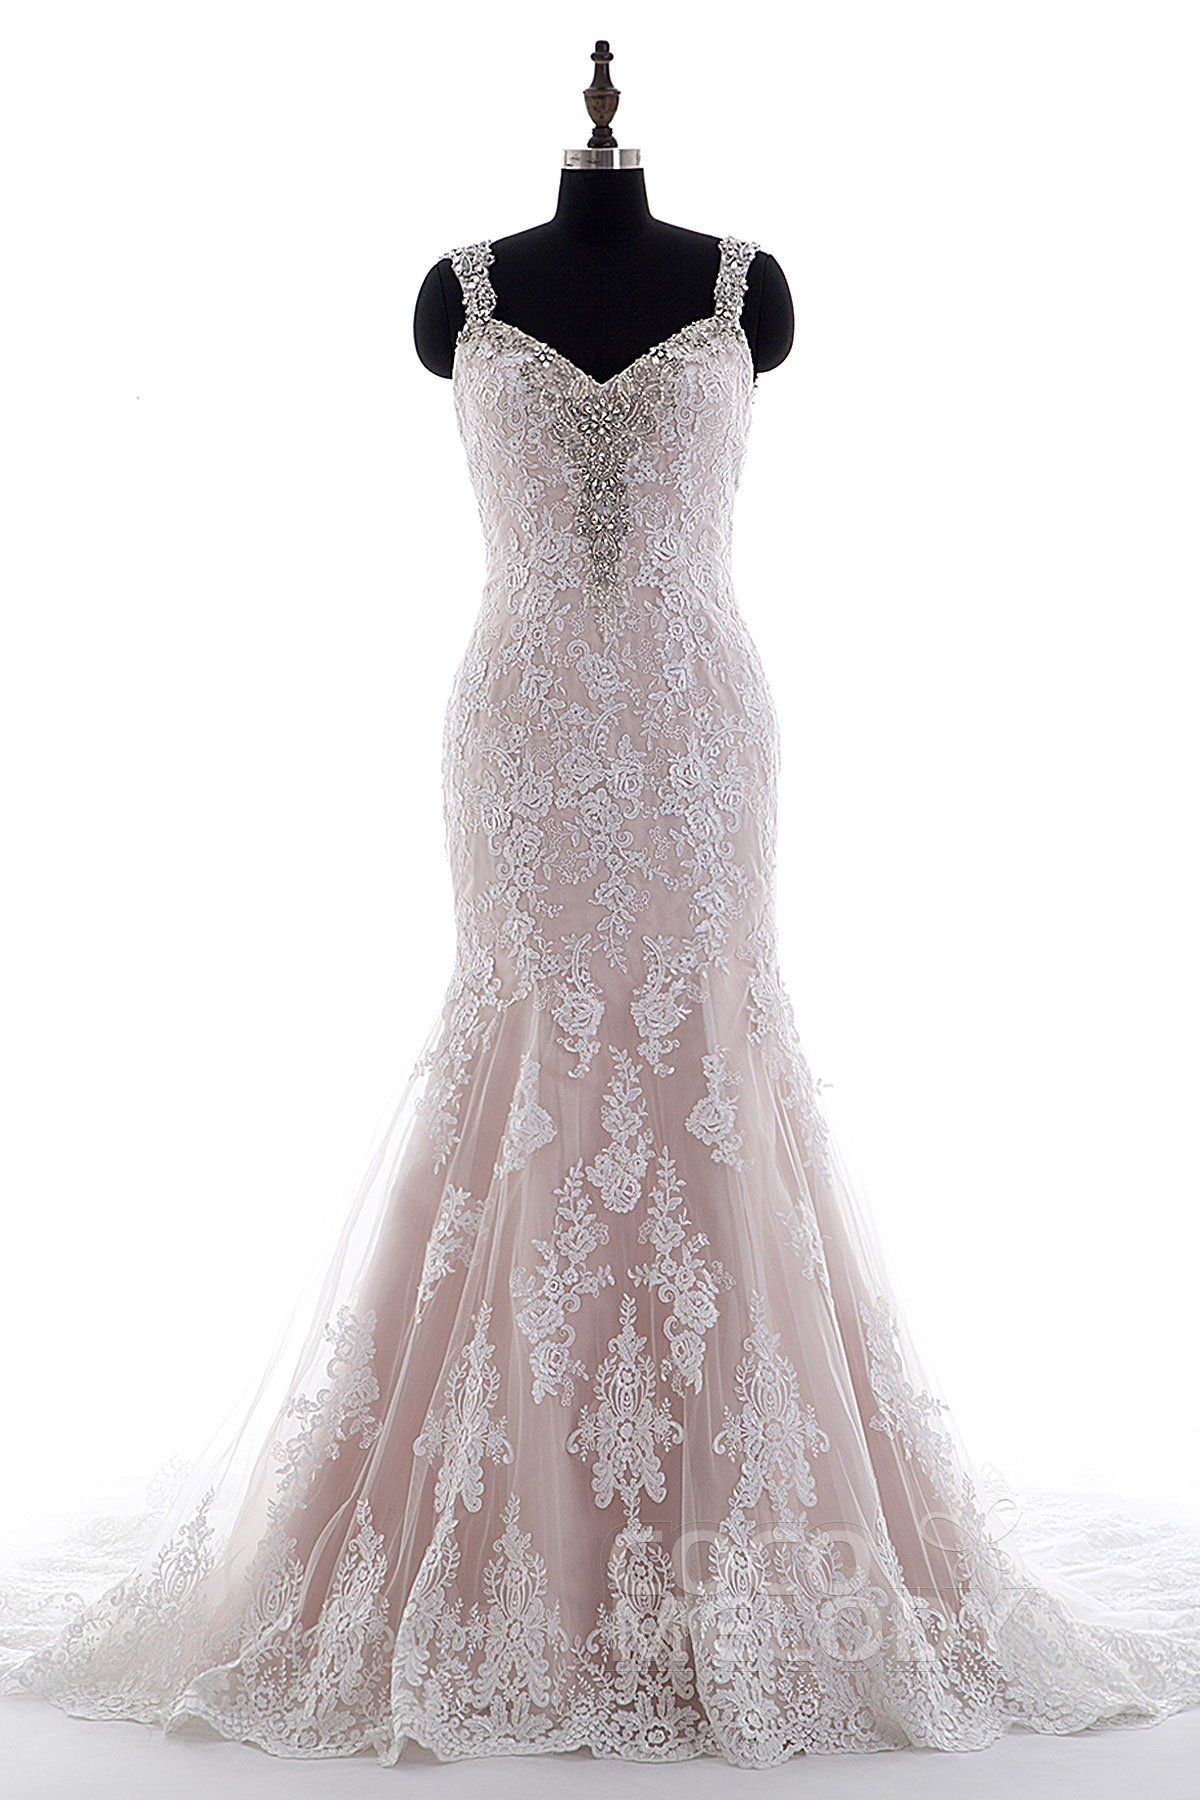 4b9ac7906b0c Gorgeous Trumpet-Mermaid Straps Natural Court Train Tulle and Lace  Ivory/Veiled Rose Sleeveless Open Back Wedding Dress with Appliques and  Beading LD3905